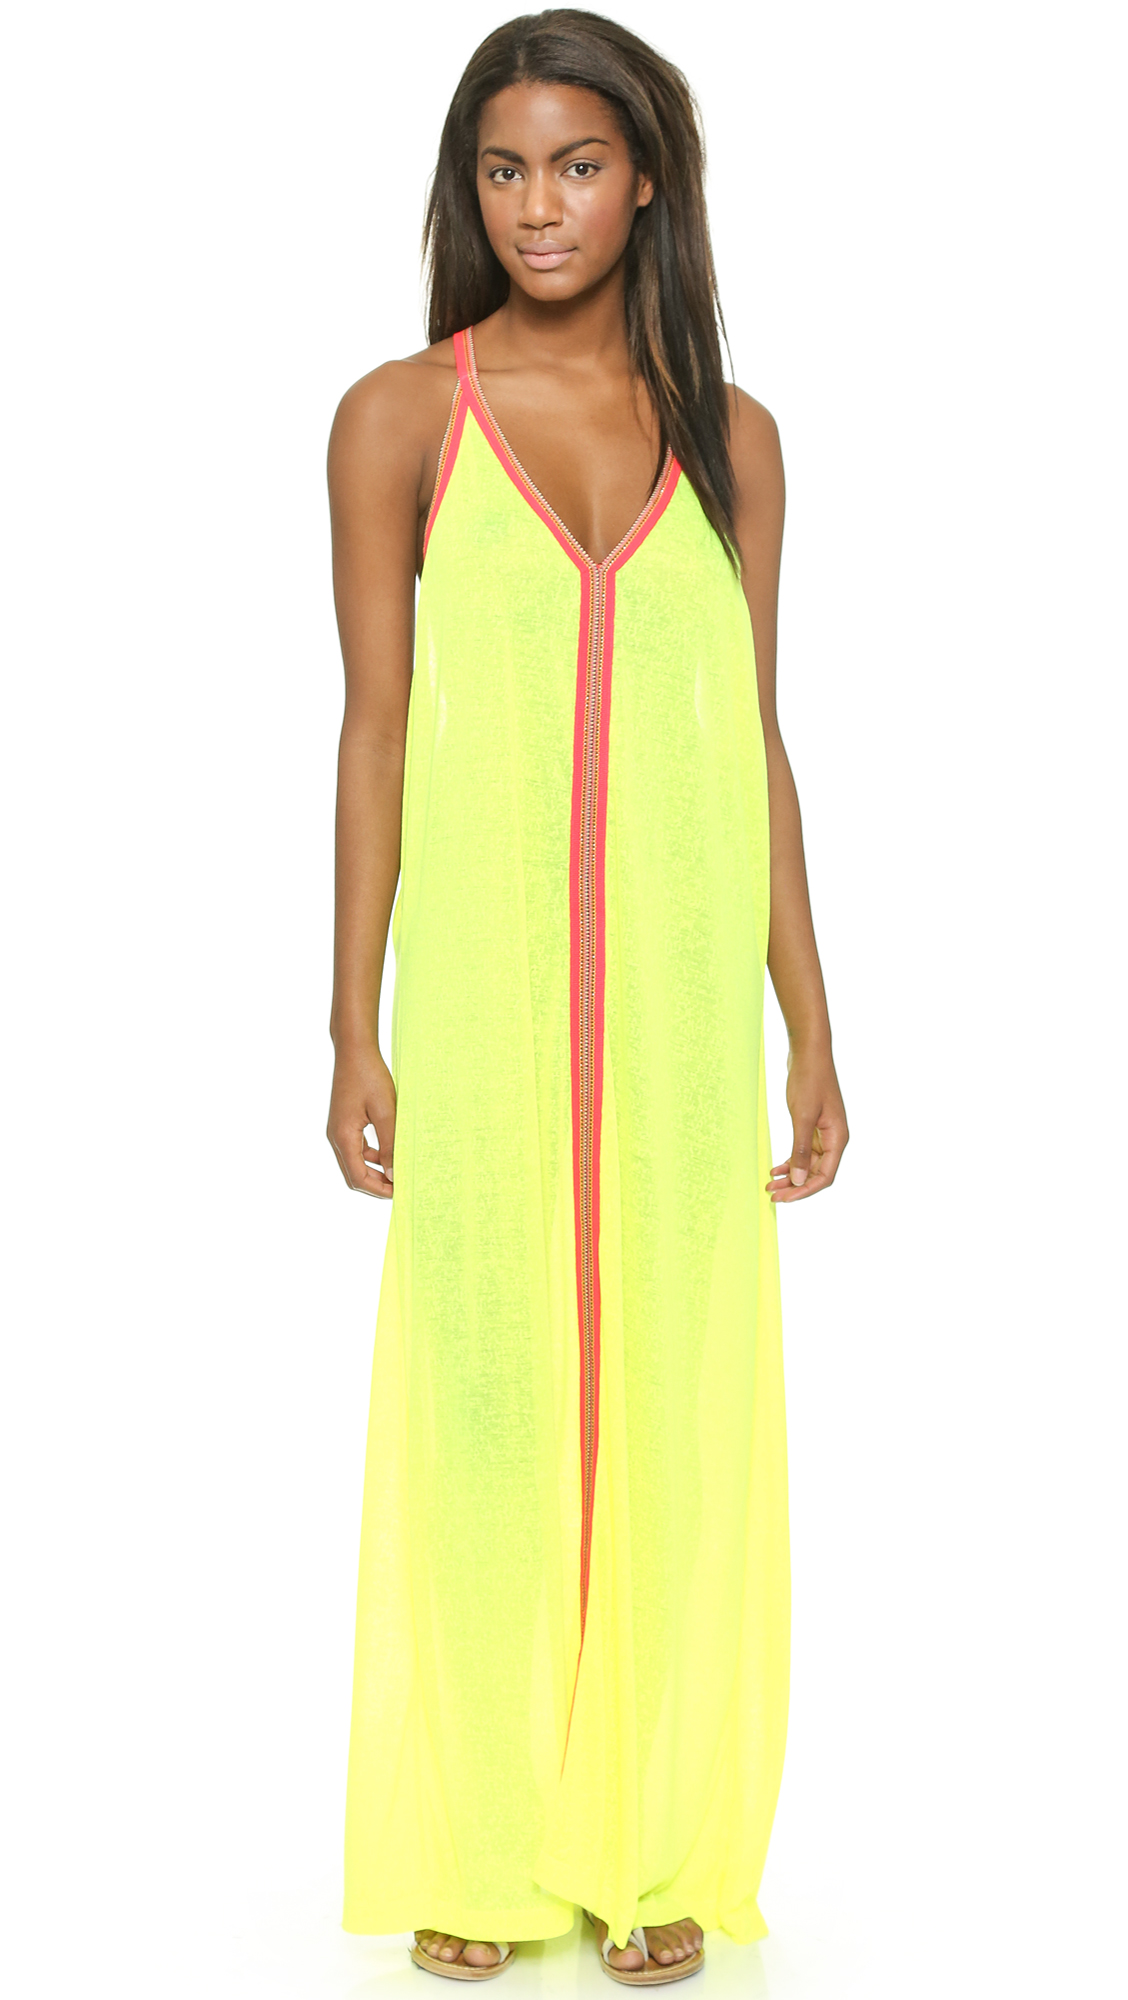 Pitusa Sun Maxi Dress - Lemon